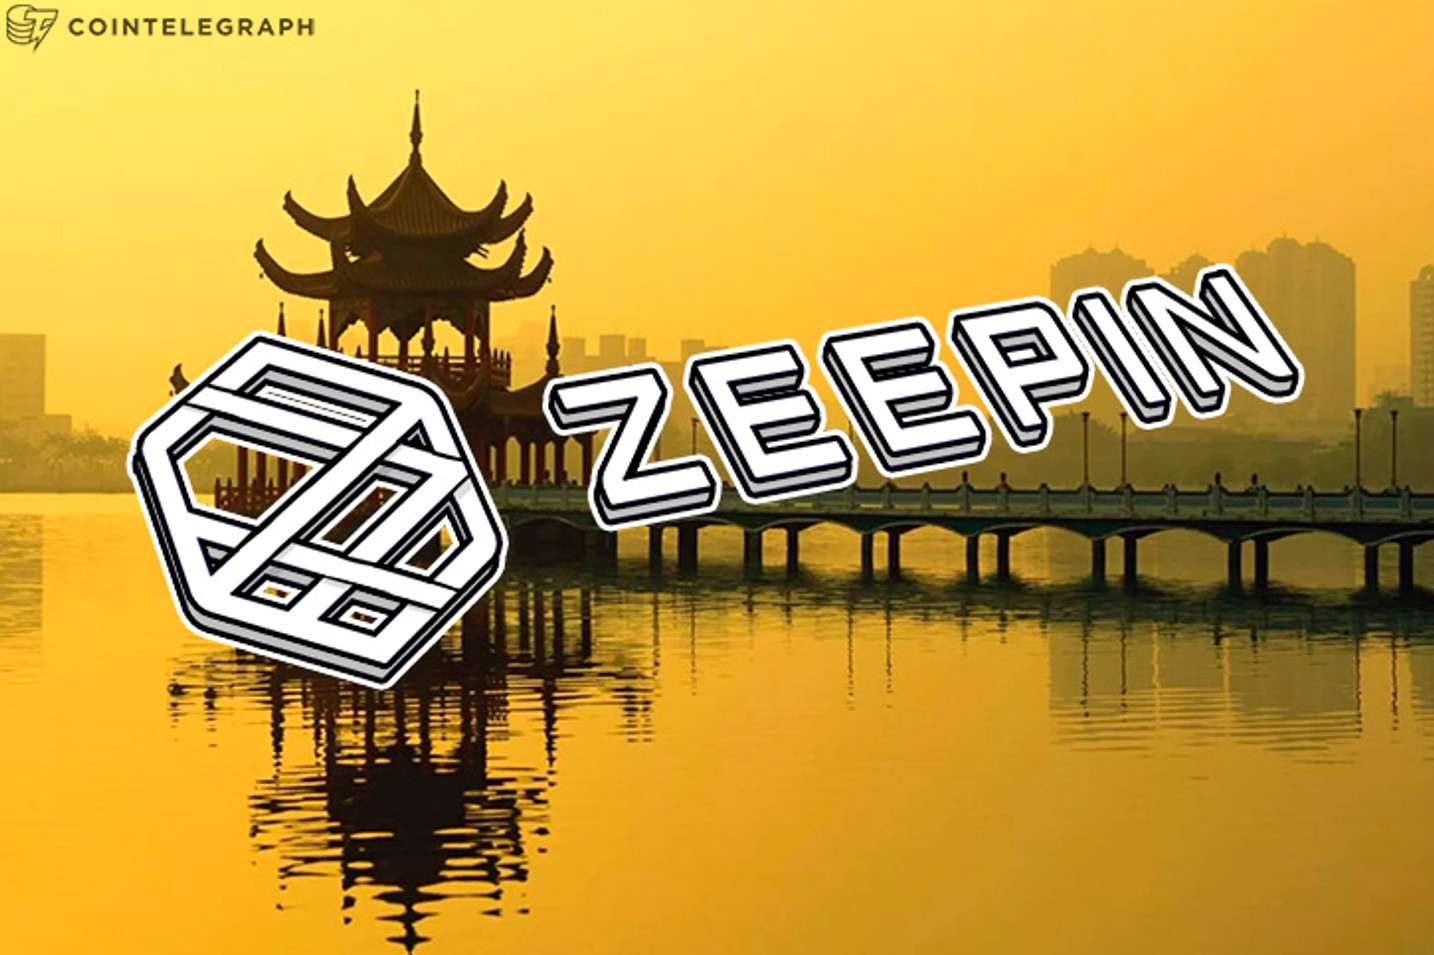 Zeepin Chain-A Smart Way to Help a Great Number of People In Creative Industry Commercialize Their Work